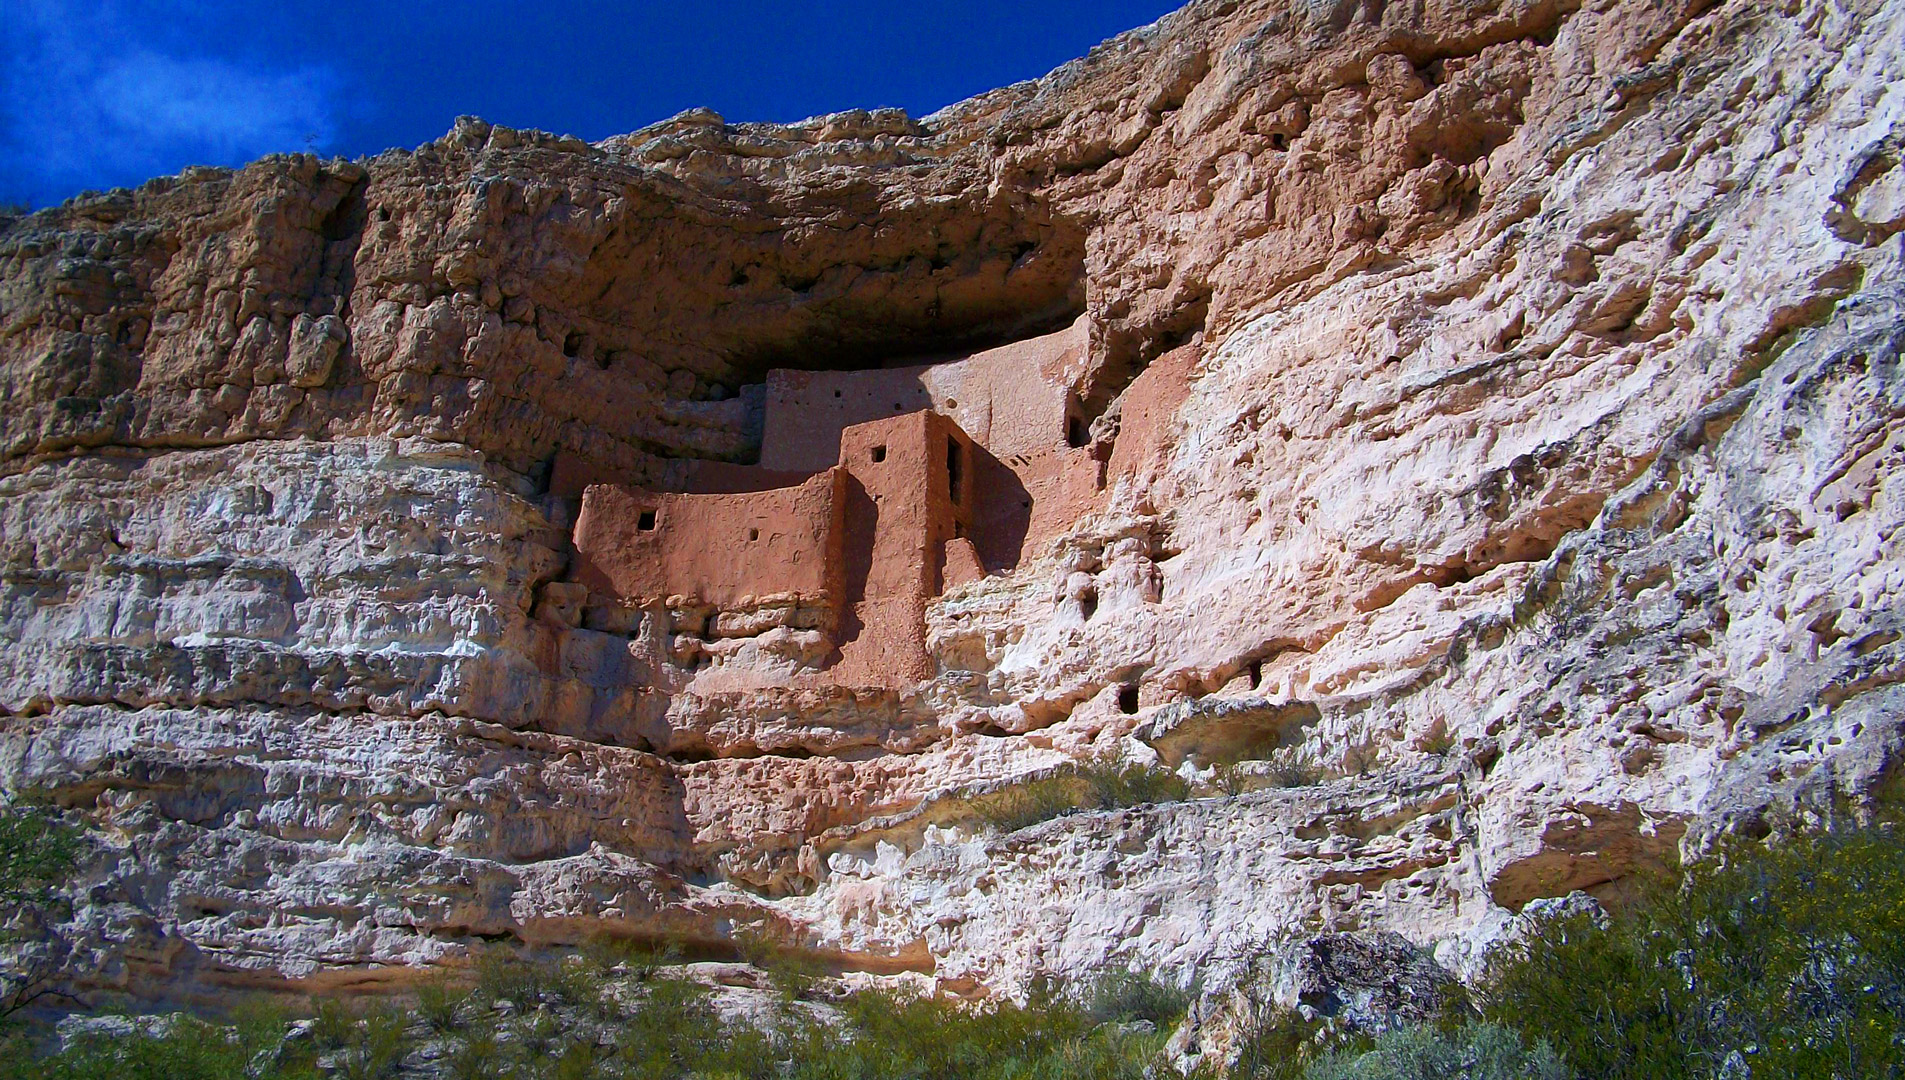 The well-preserved ruins on the limestone cliffs at Montezuma Castle National Monument.